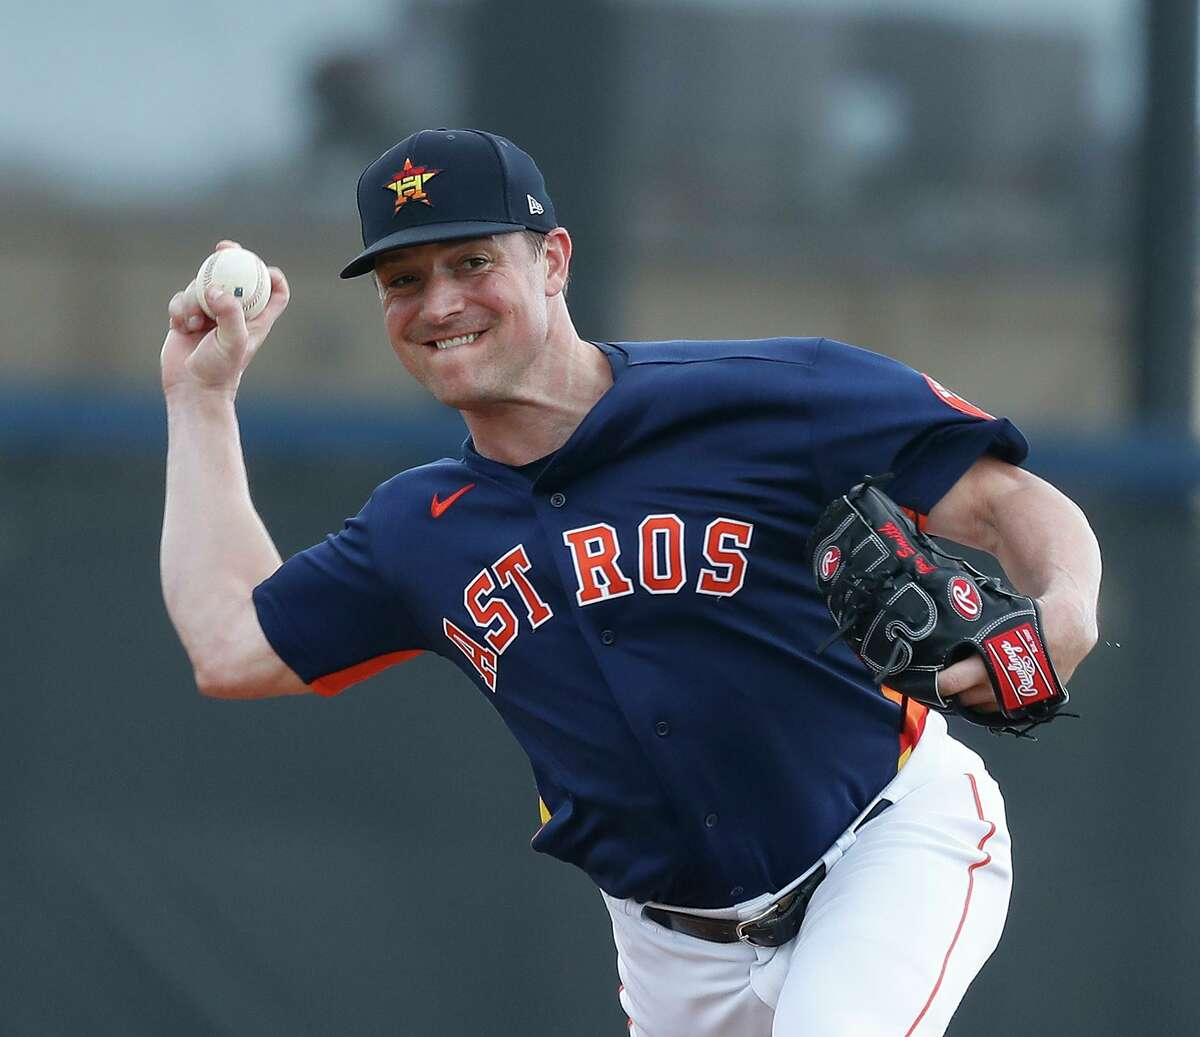 Joe Smith was with the Astros in spring training last year before opting out of the season to take care of his mother when the pandemic hit.